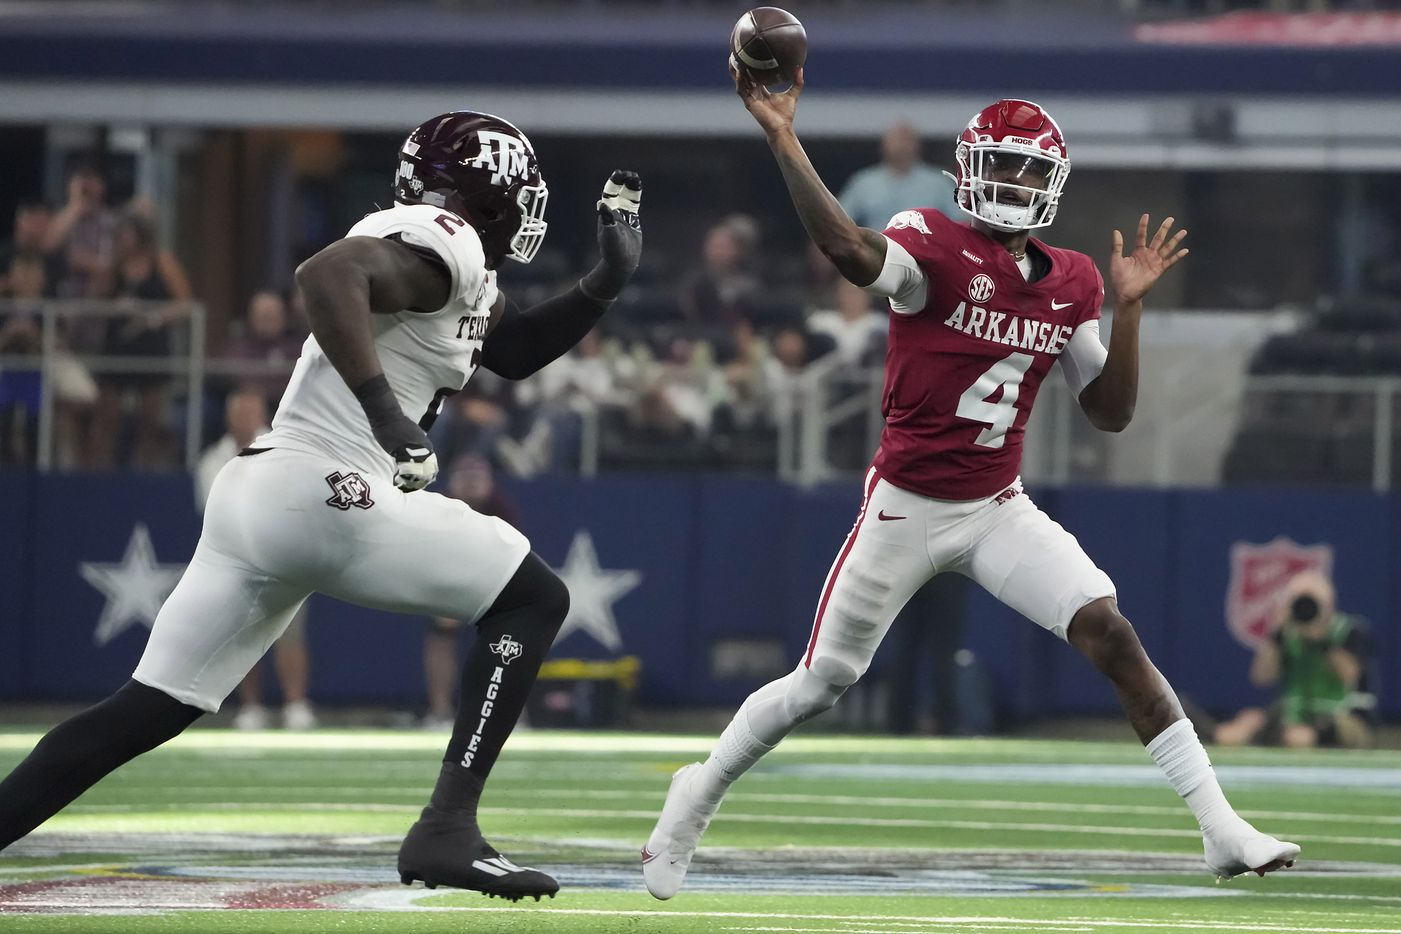 Arkansas quarterback Malik Hornsby (4) makes a pass as Texas A&M defensive lineman Micheal Clemons (2) applies pressure during the second half of an NCAA football game at AT&T Stadium on Saturday, Sept. 25, 2021, in Arlington. Arkansas won the game 20-10.